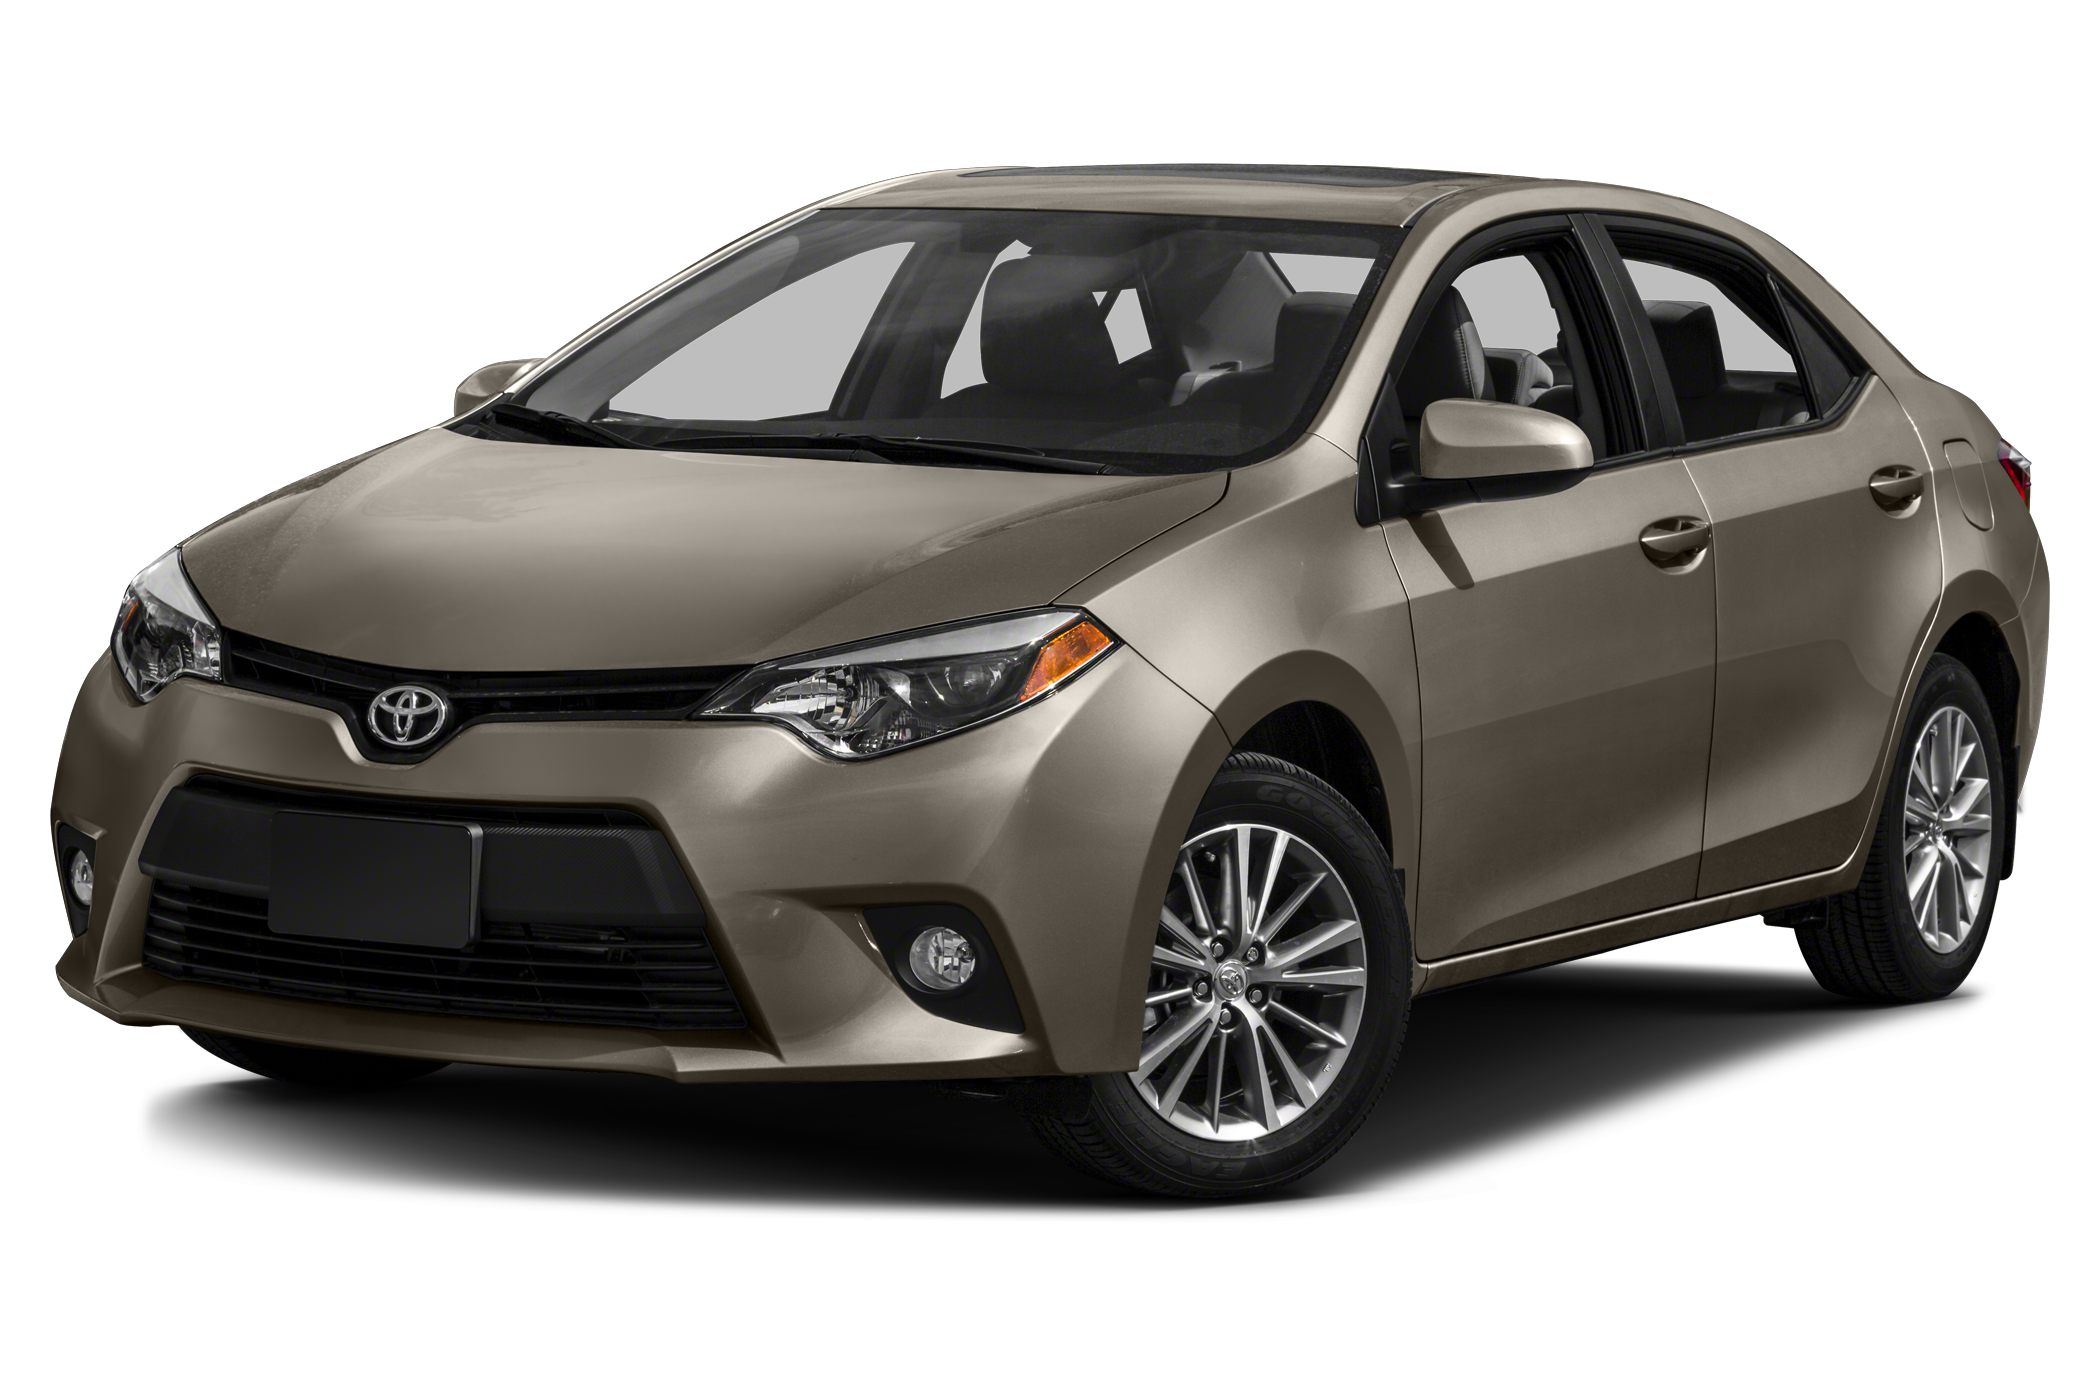 2015 Toyota Corolla LE Sedan for sale in Chippewa Falls for $18,298 with 1 miles